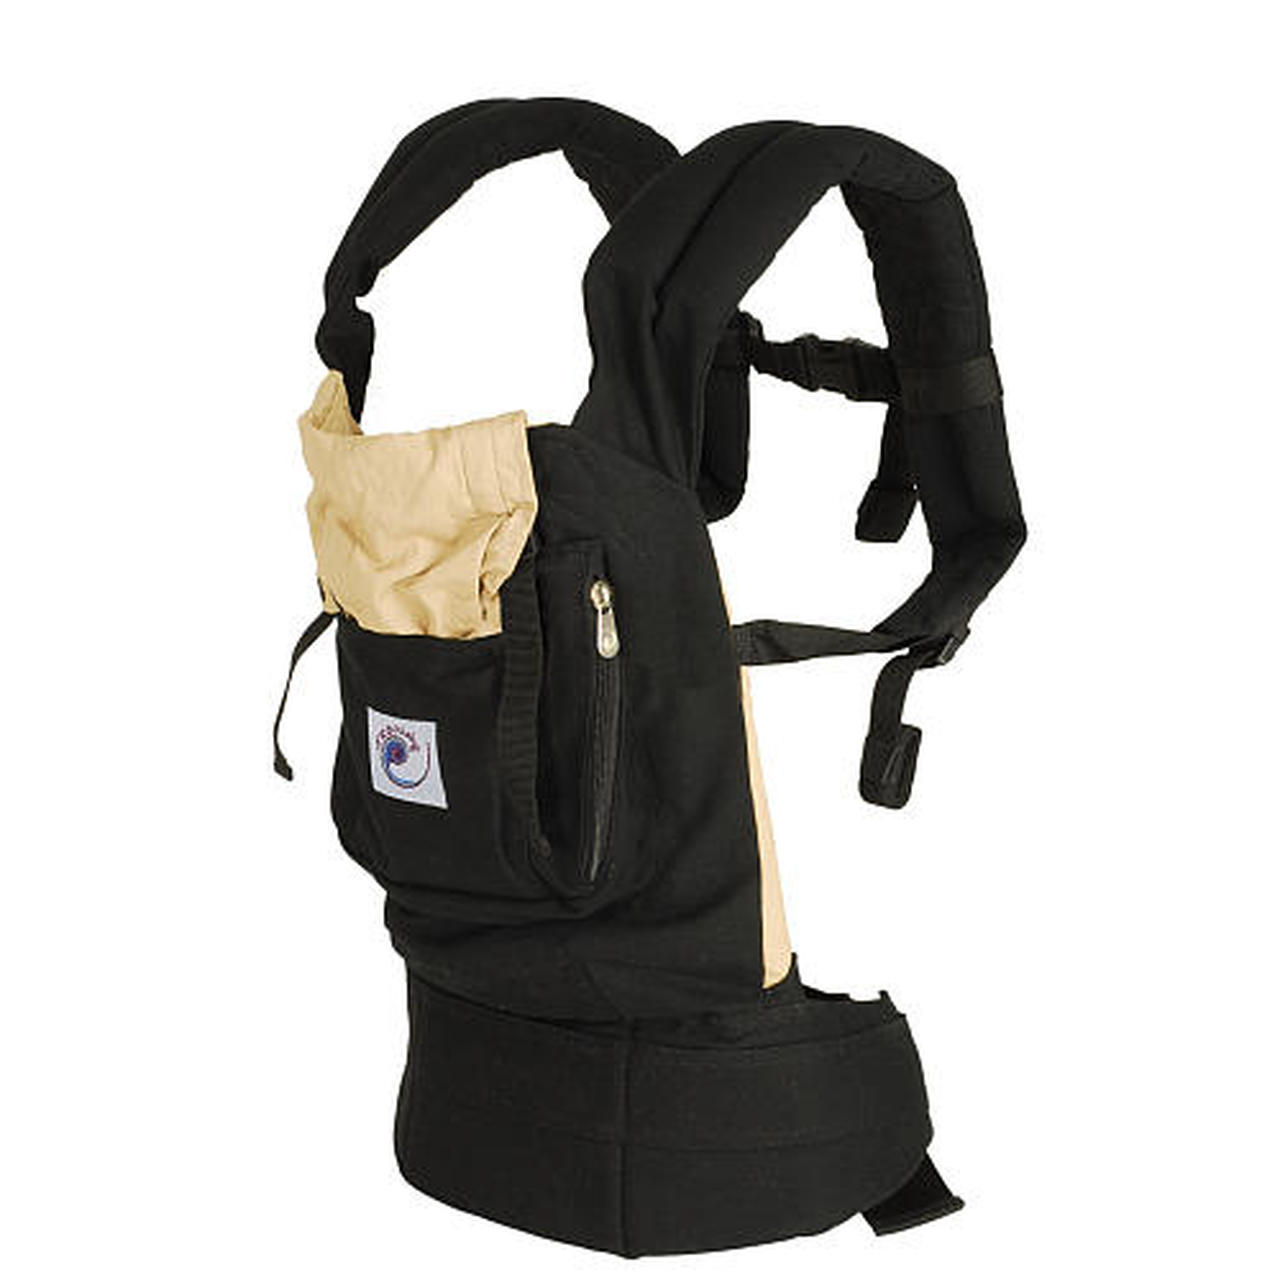 ERGObaby Original Baby Carrier with New Logo